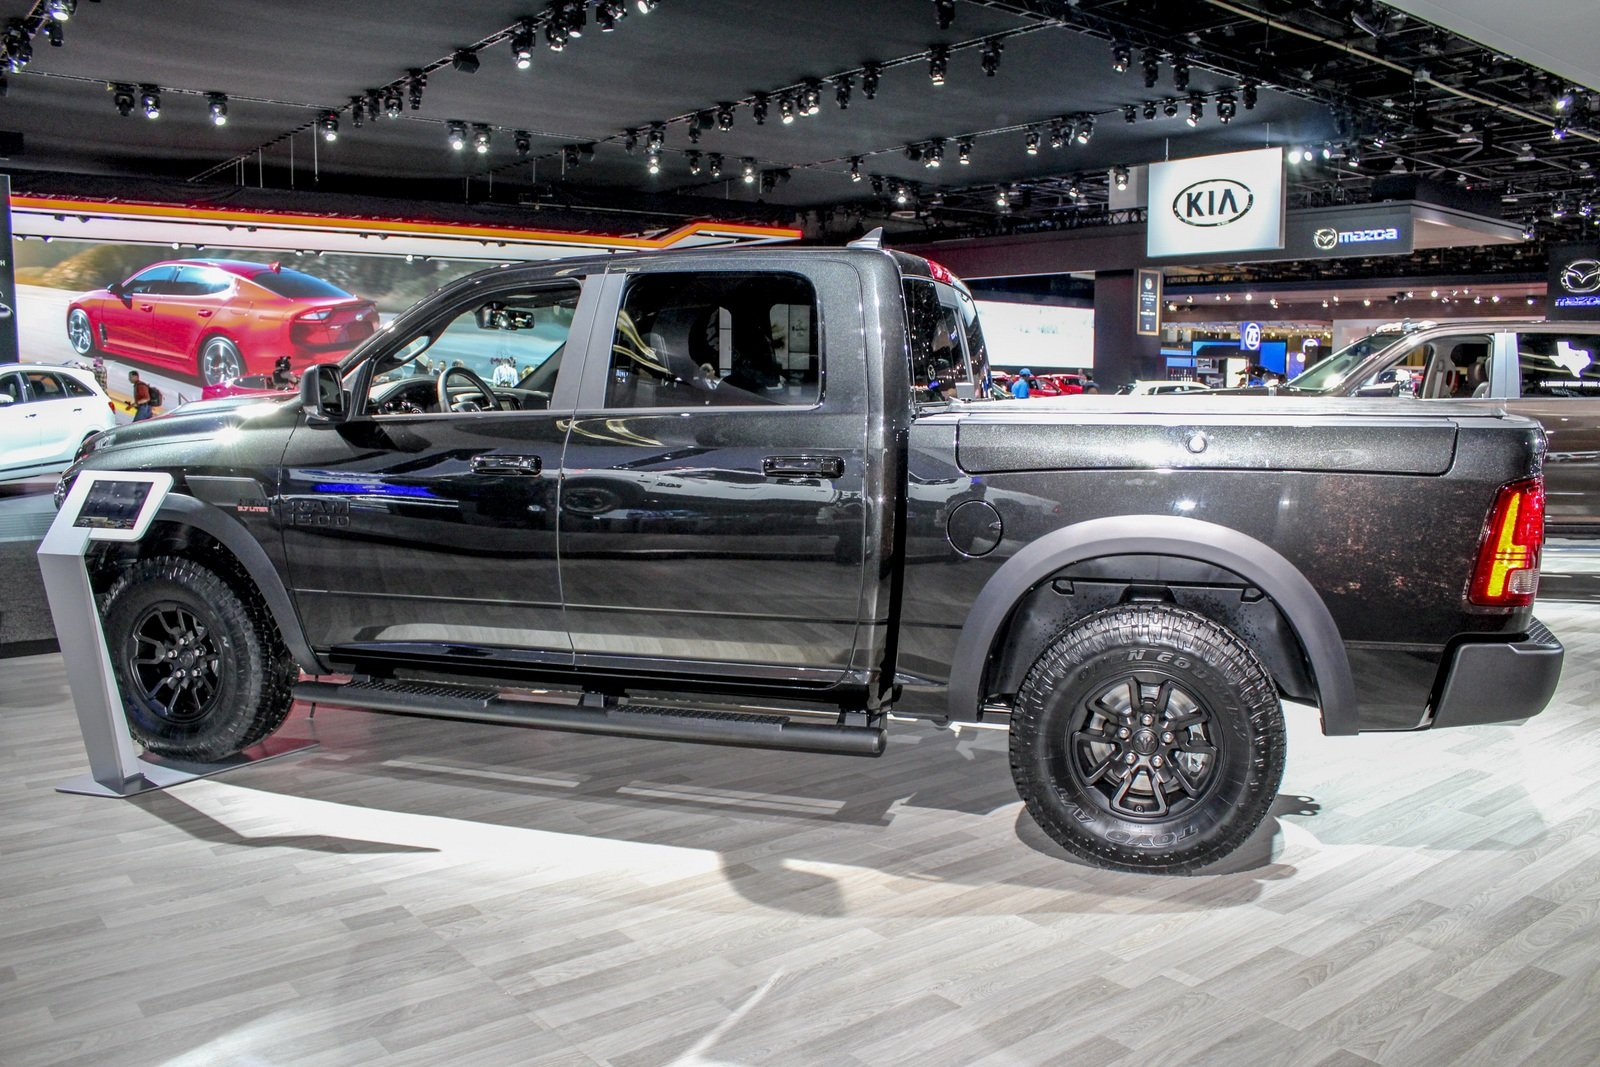 2017 ram 1500 rebel black edition picture 703116 truck review top speed. Black Bedroom Furniture Sets. Home Design Ideas